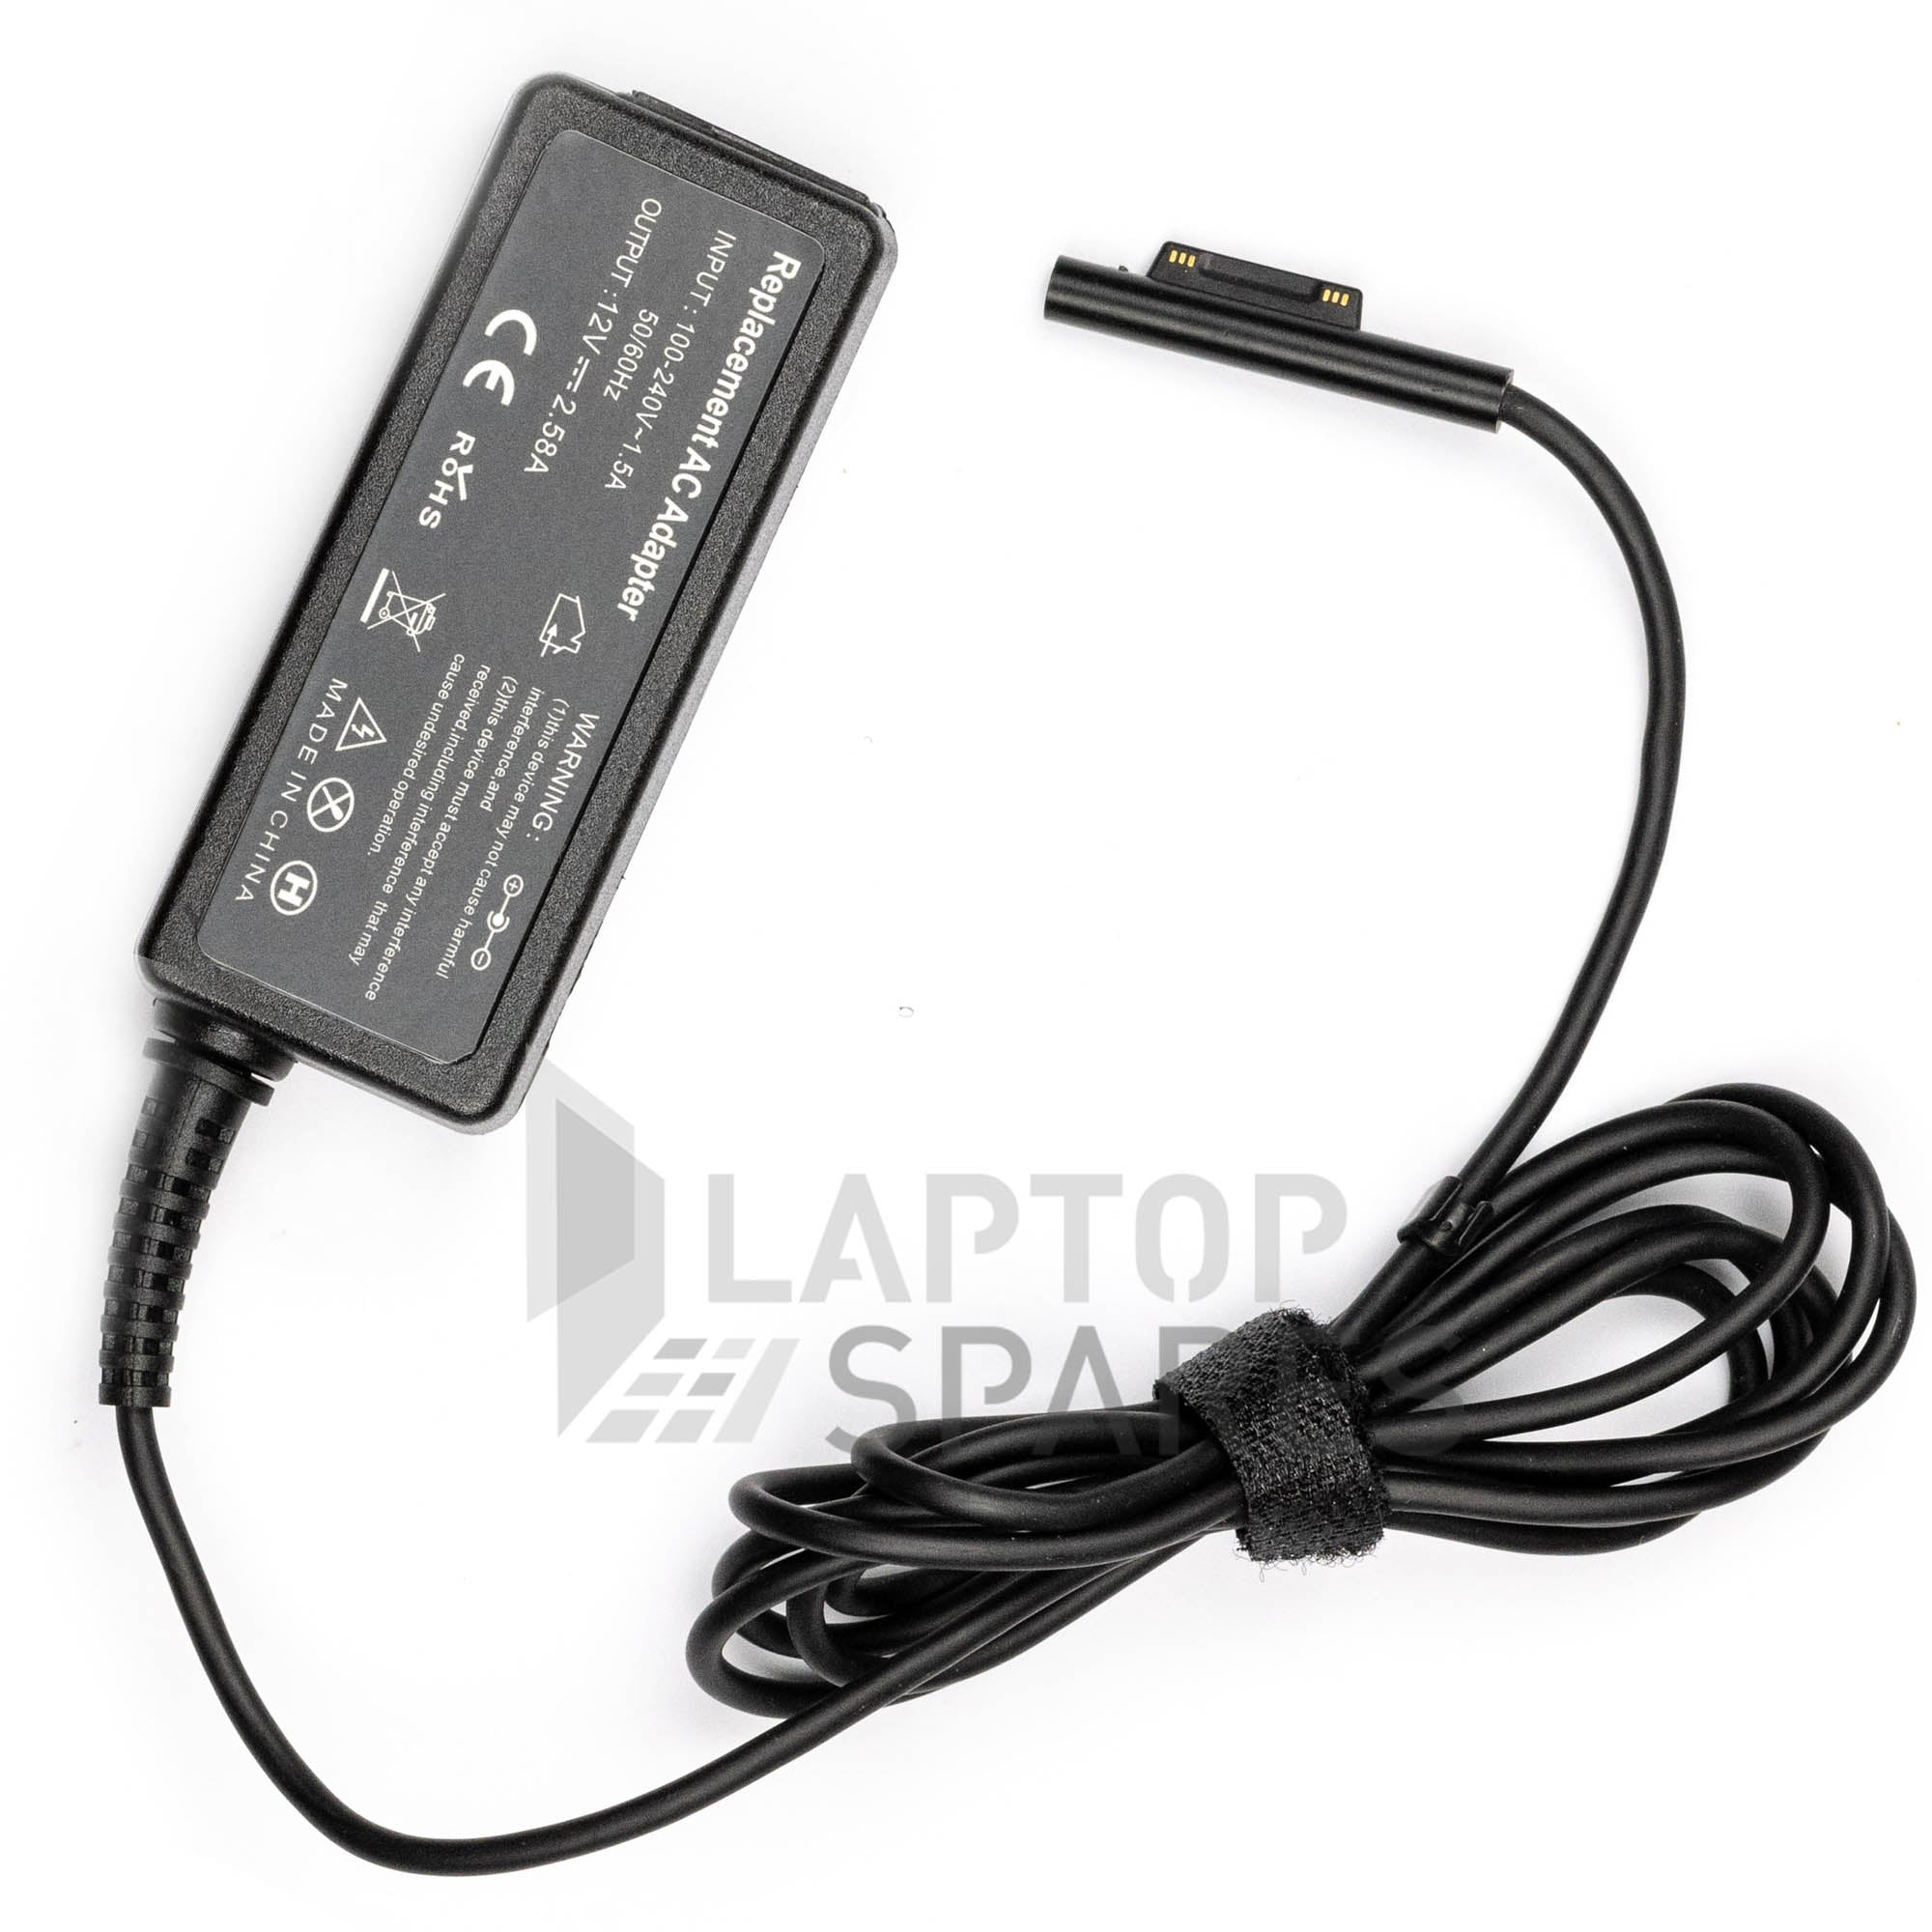 Microsoft 24W 12V 2A Surface Pro Laptop AC Adapter Charger